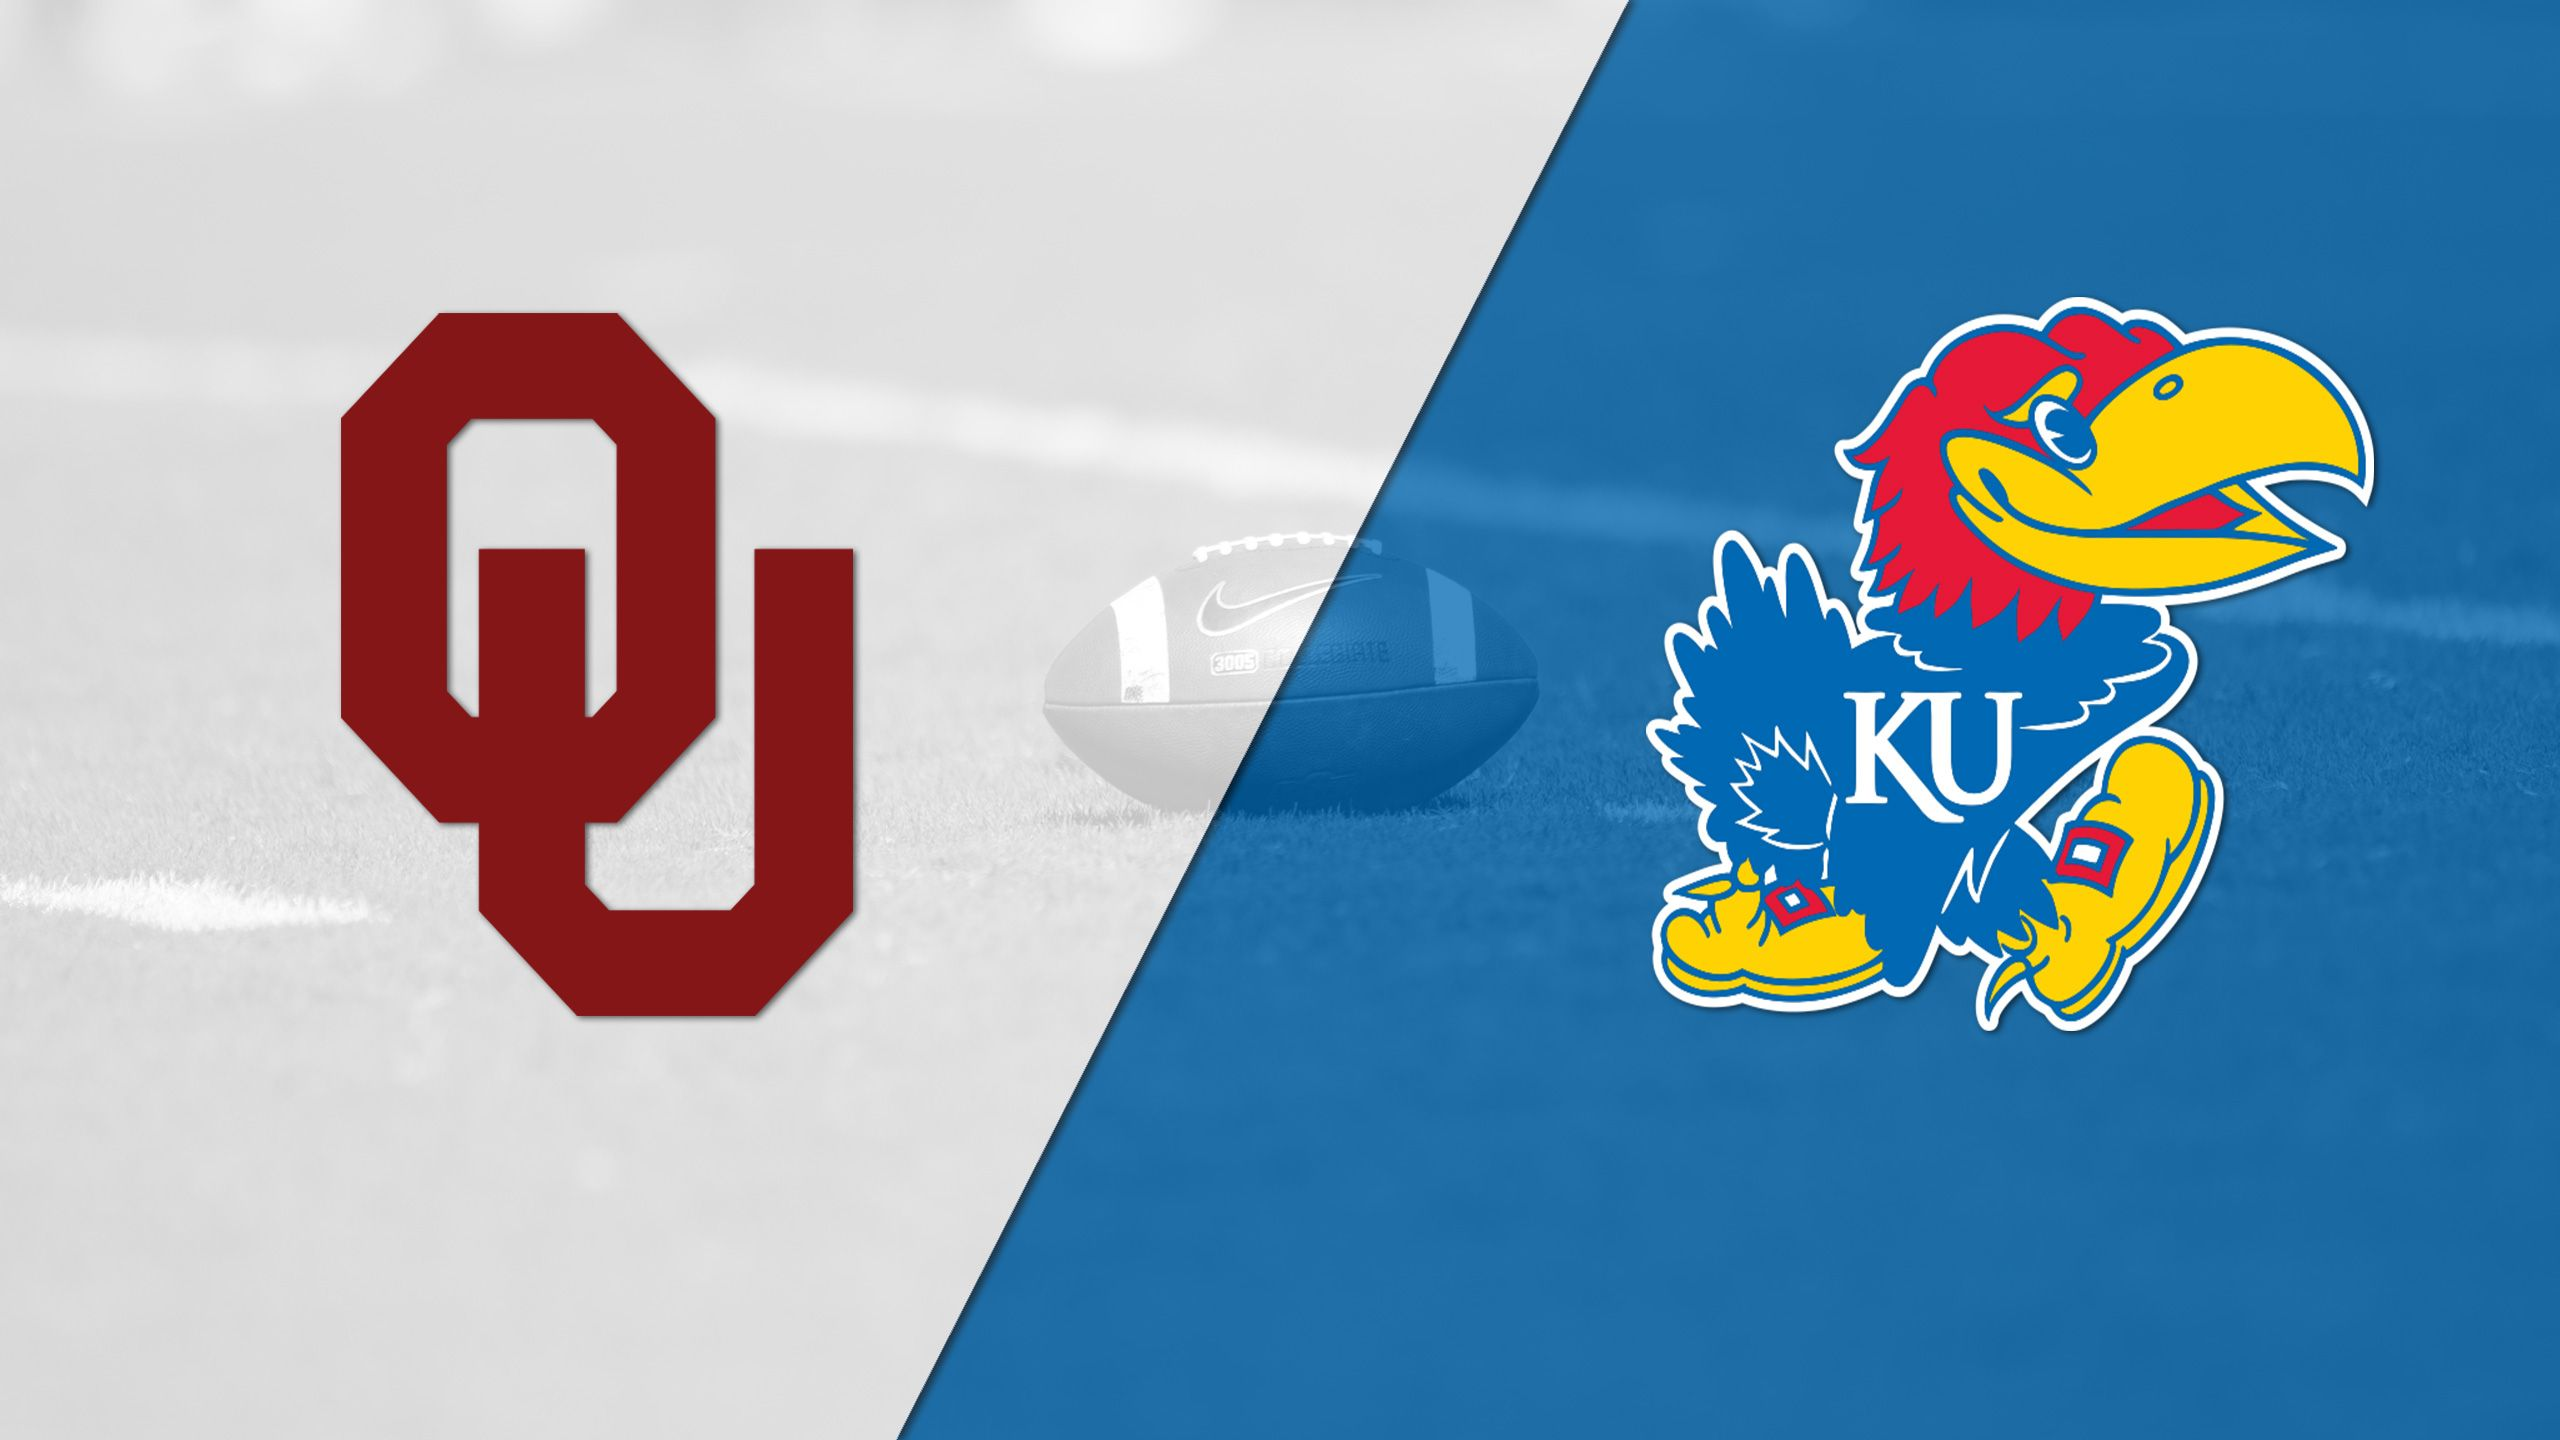 #4 Oklahoma vs. Kansas (Football)